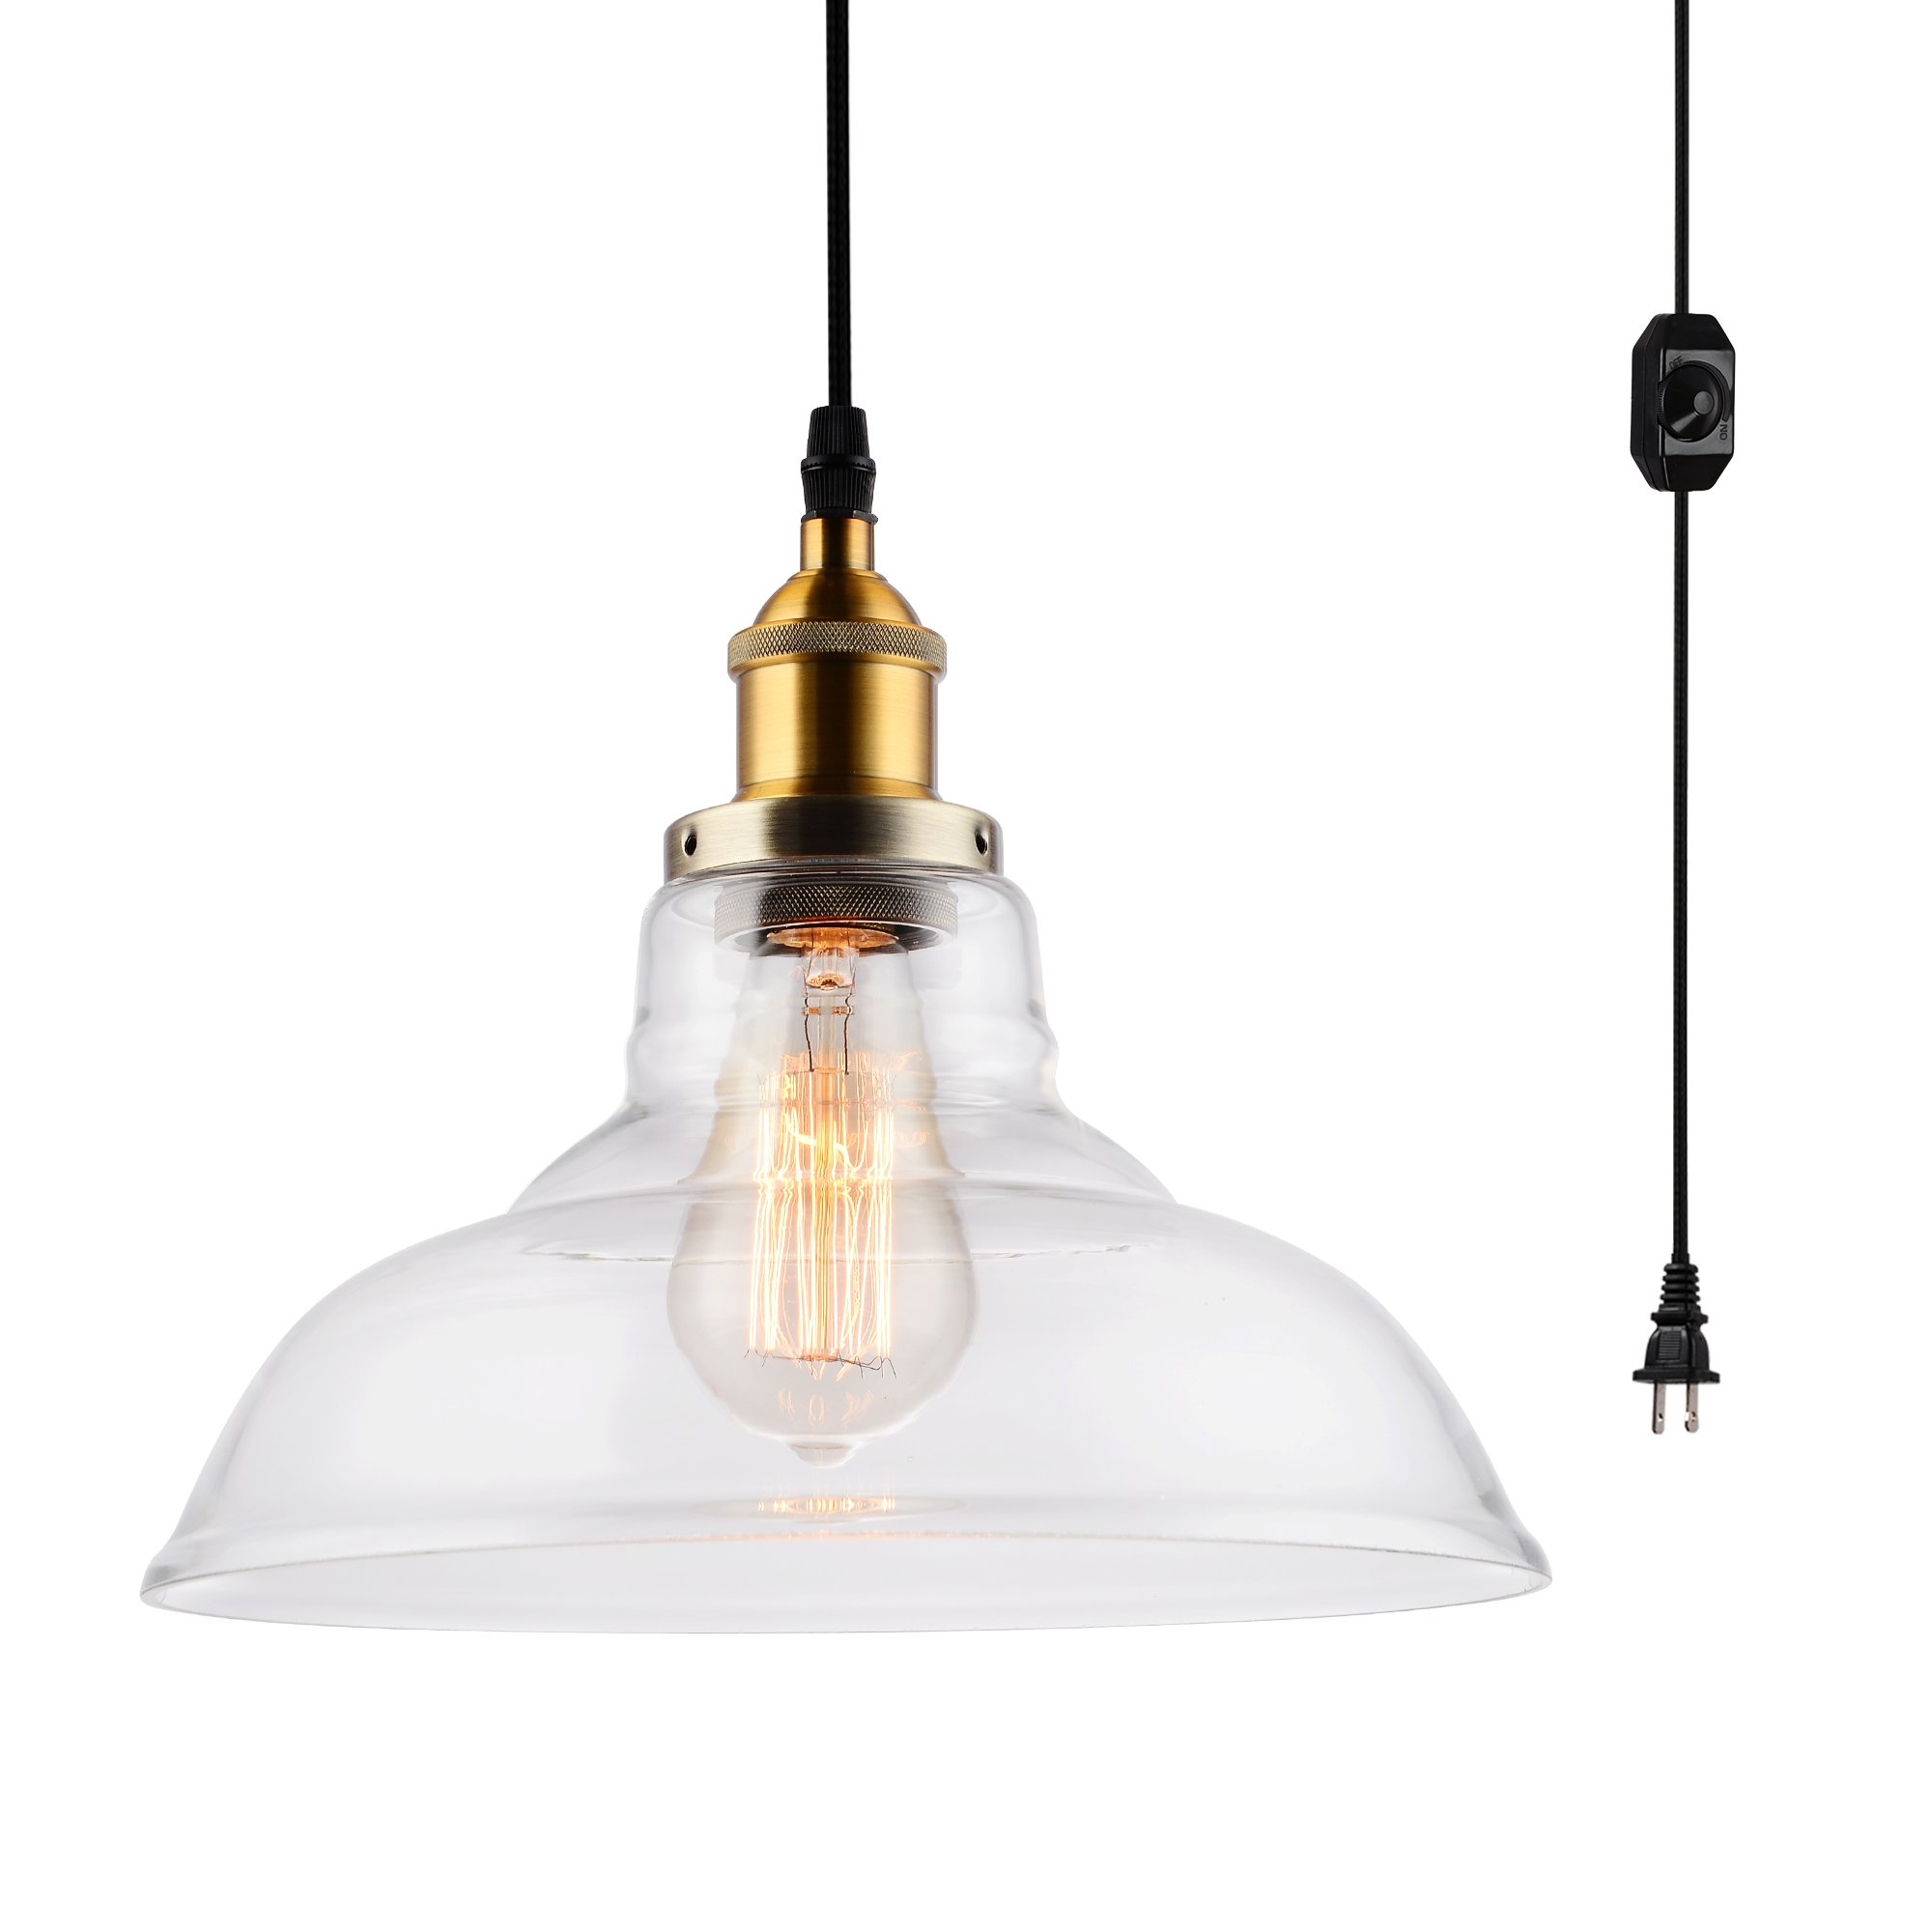 HMVPL Glass Hanging Lights with Plug in Cord and On/Off Dimmer Switch, Updated Industrial Edison Vintage Swag Pendant Lamps for Kitchen Island or Dining Room by HMVPL (Image #1)